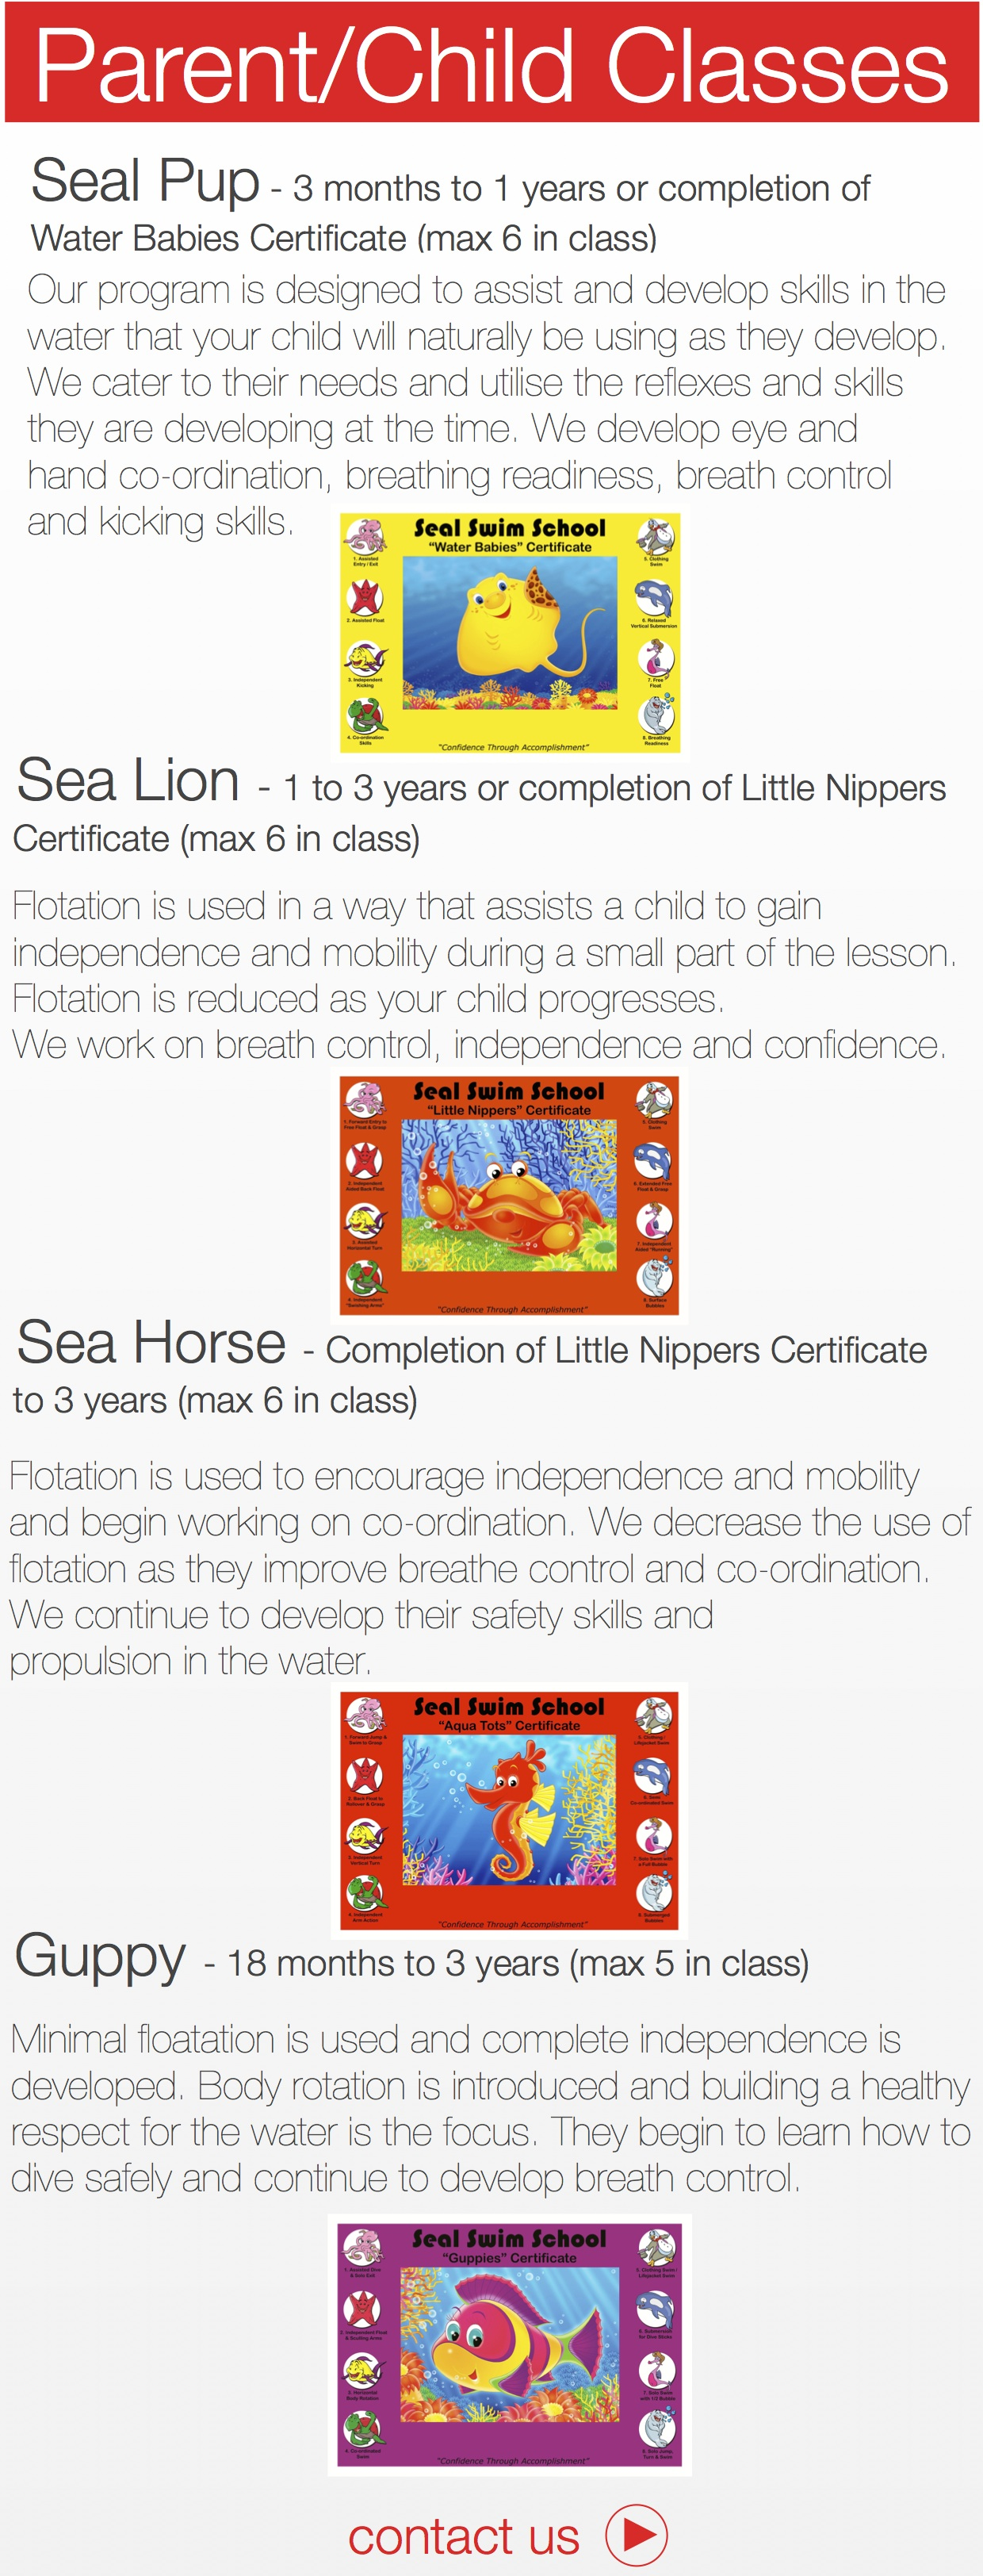 Sea Lion - 1 to 3 years or completion of Little Nippers Certificate (max 6 in class) Flotation is used in a way that assists a child to gain independence and mobility during a small part of the lesson. Flotation is reduced as your child progresses. We work on breath control, independence and confidence. Sea Horse - Completion of Little Nippers Certificate to 3 years (max 6 in class) !Flotation is used to encourage independence and mobility and begin working on co-ordination. We decrease the use of flotation as they improve breathe control and co-ordination. We continue to develop their safety skills and propulsion in the water. Guppy - 18 months to 3 years (max 5 in class) Minimal floatation is used and complete independence is developed. Body rotation is introduced and building a healthy respect for the water is the focus. They begin to learn how to dive safely and continue to develop breath control. Water Babies Certificate (max 6 in class) !Our program is designed to assist and develop skills in the water that your child will naturally be using as they develop. We cater to their needs and utilise the reflexes and skills they are developing at the time. We develop eye and hand co-ordination, breathing readiness, breath control and kicking skills.